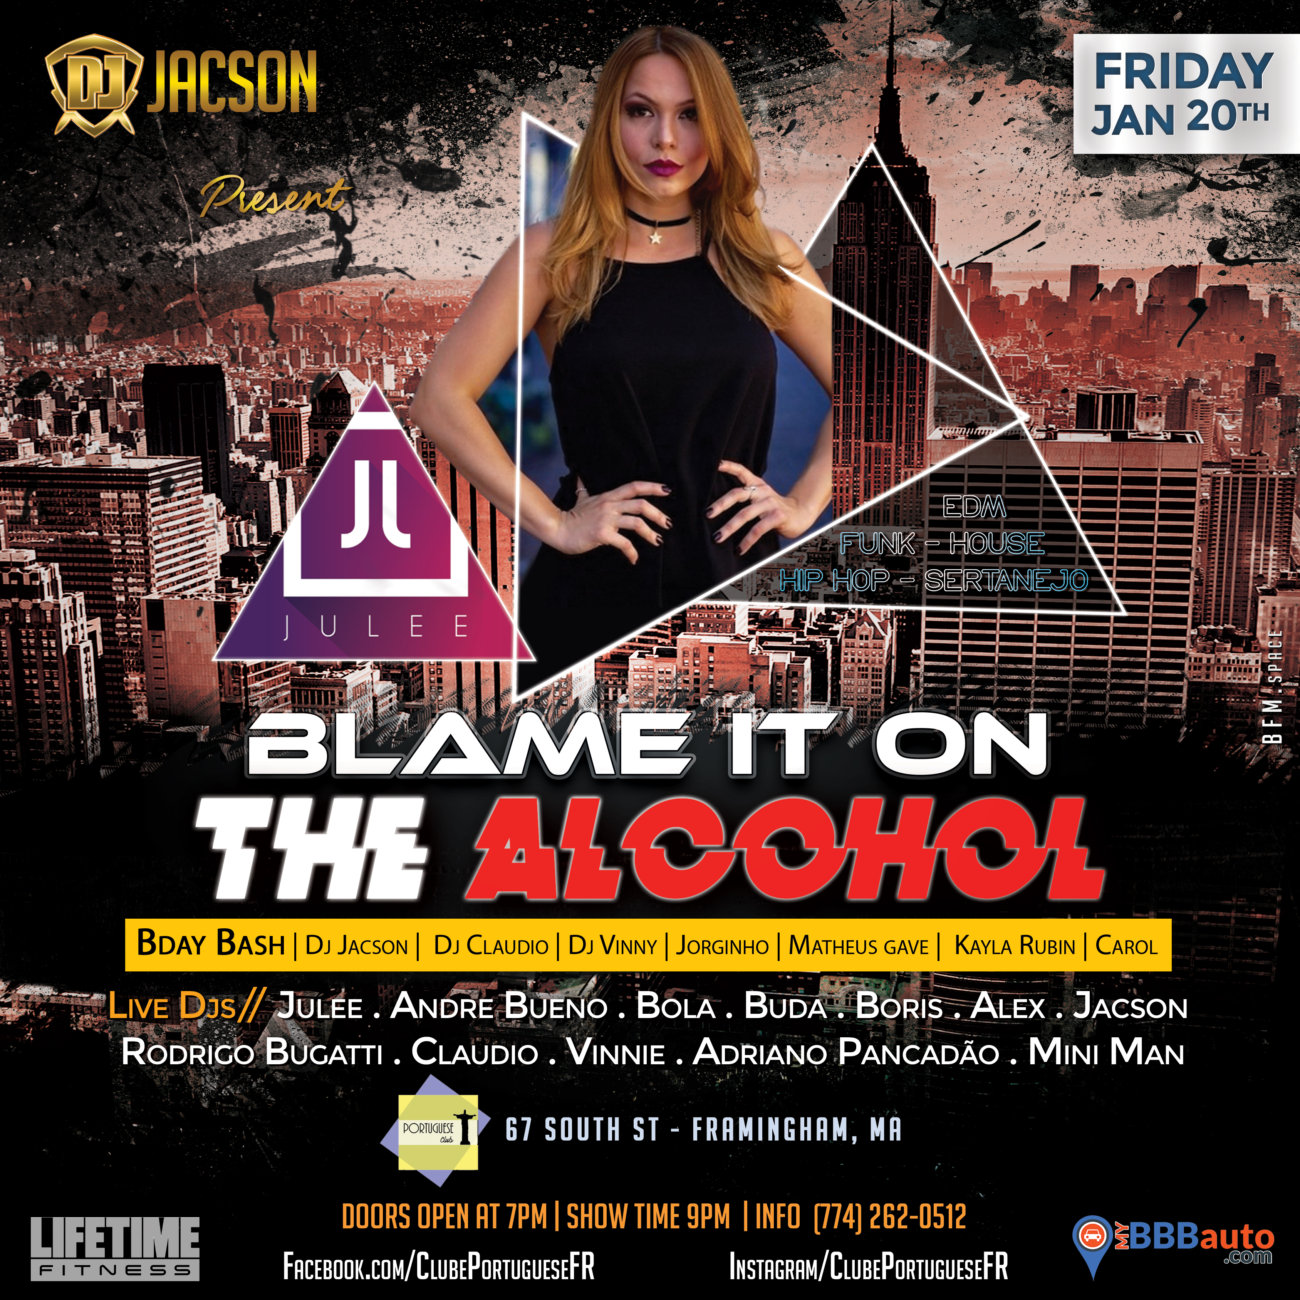 blame-it-on-the-alcohol-dj-jacson-ok